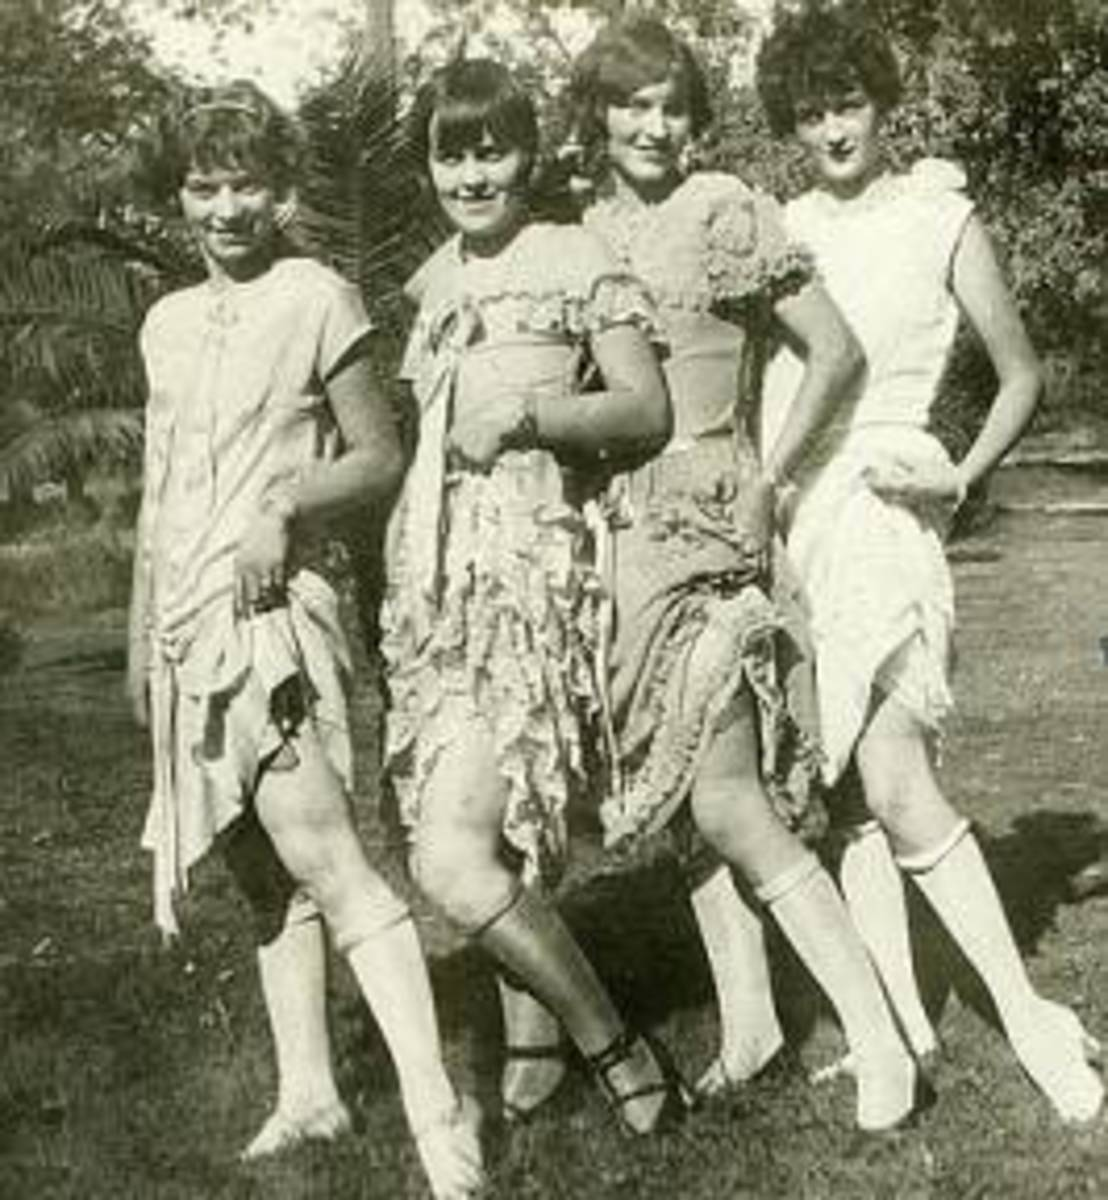 Four young ladies in the Roaring 20s.